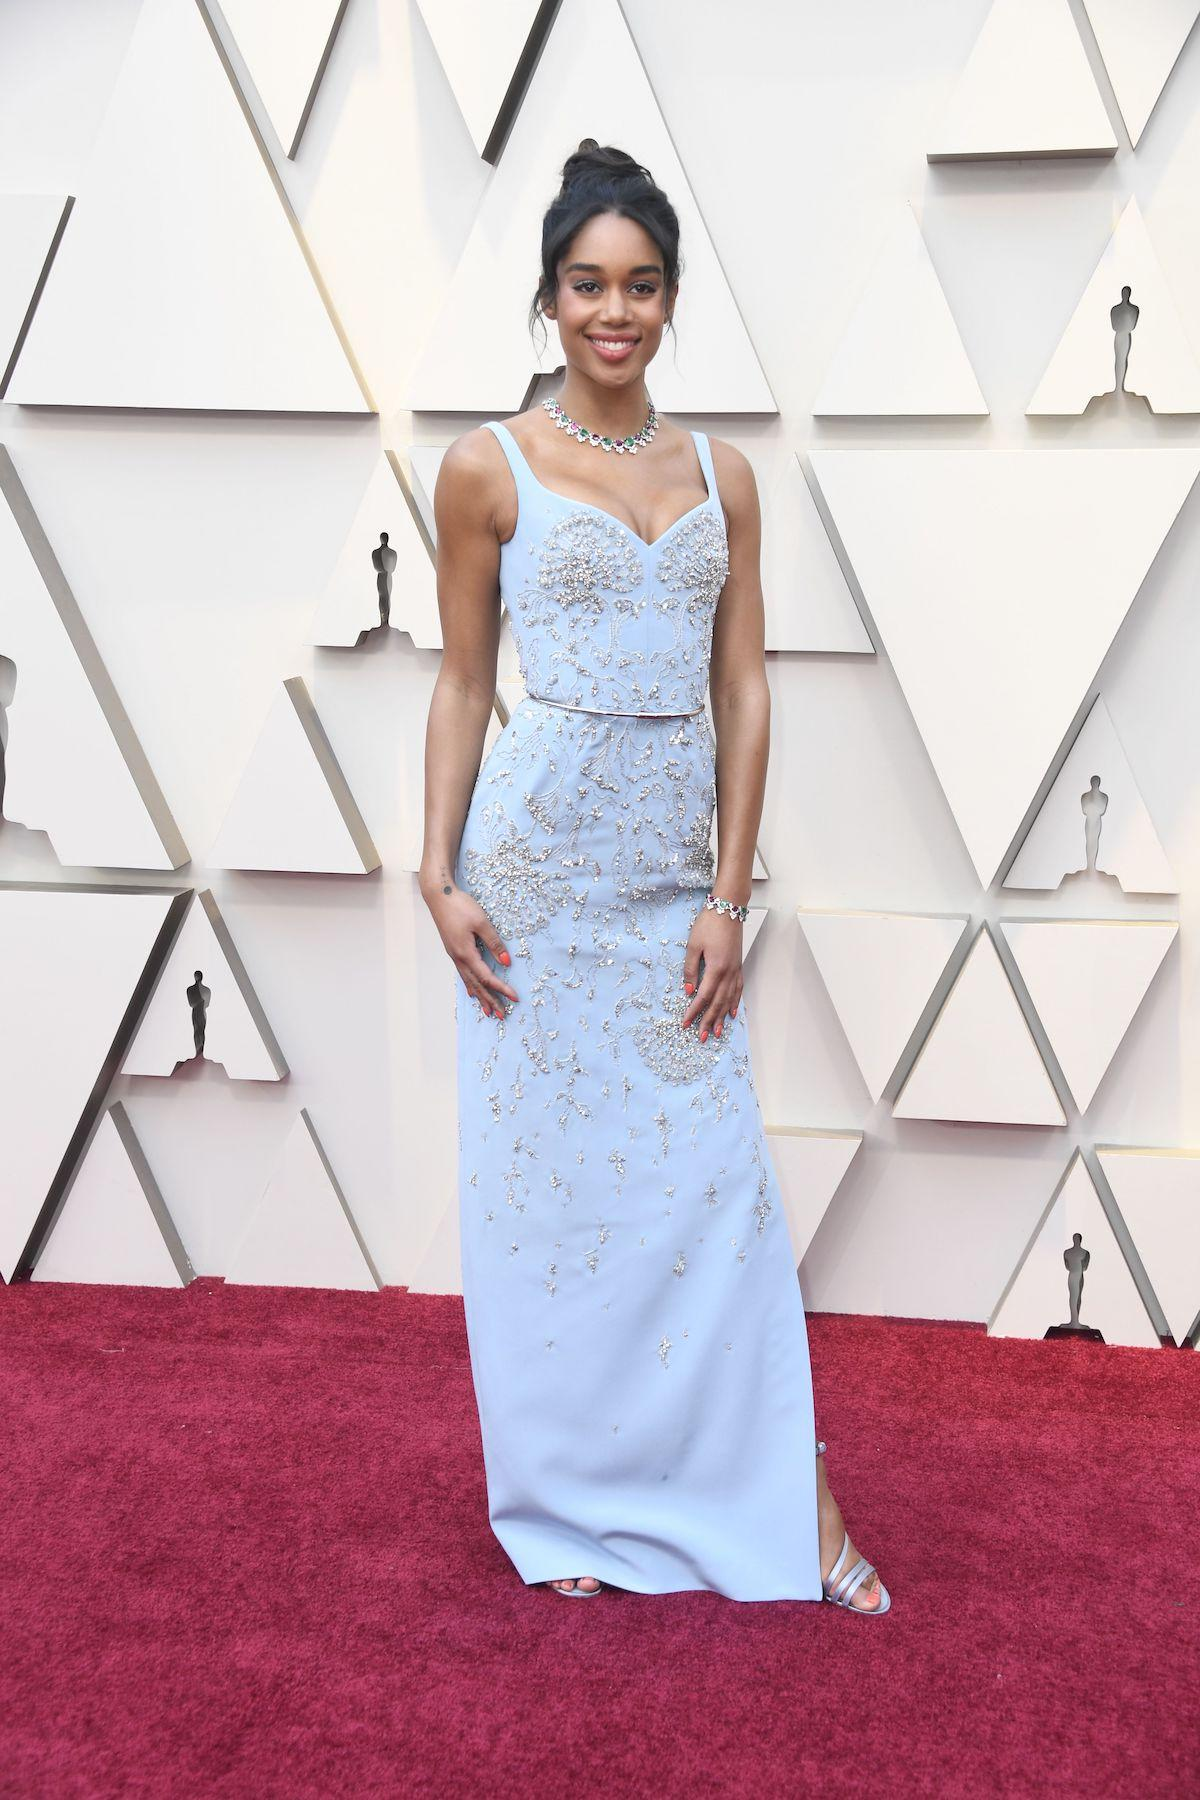 laura-harrier-oscars-eco-friendly-1551111026472-1551111028782.jpg